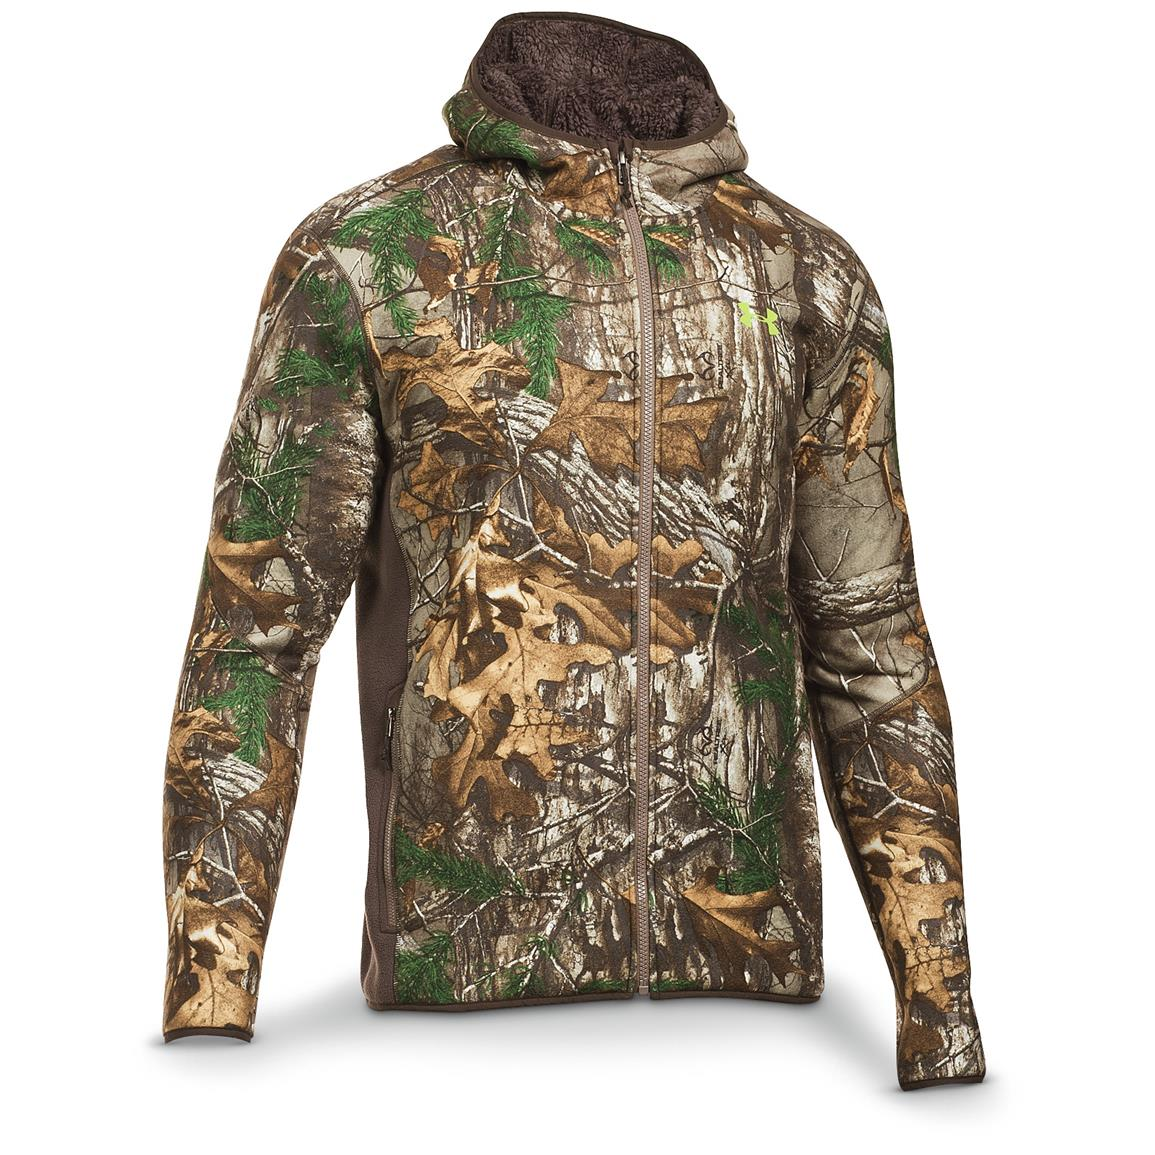 Under Armour Men's Stealth Hoodie, Velocity / Realtree Xtra